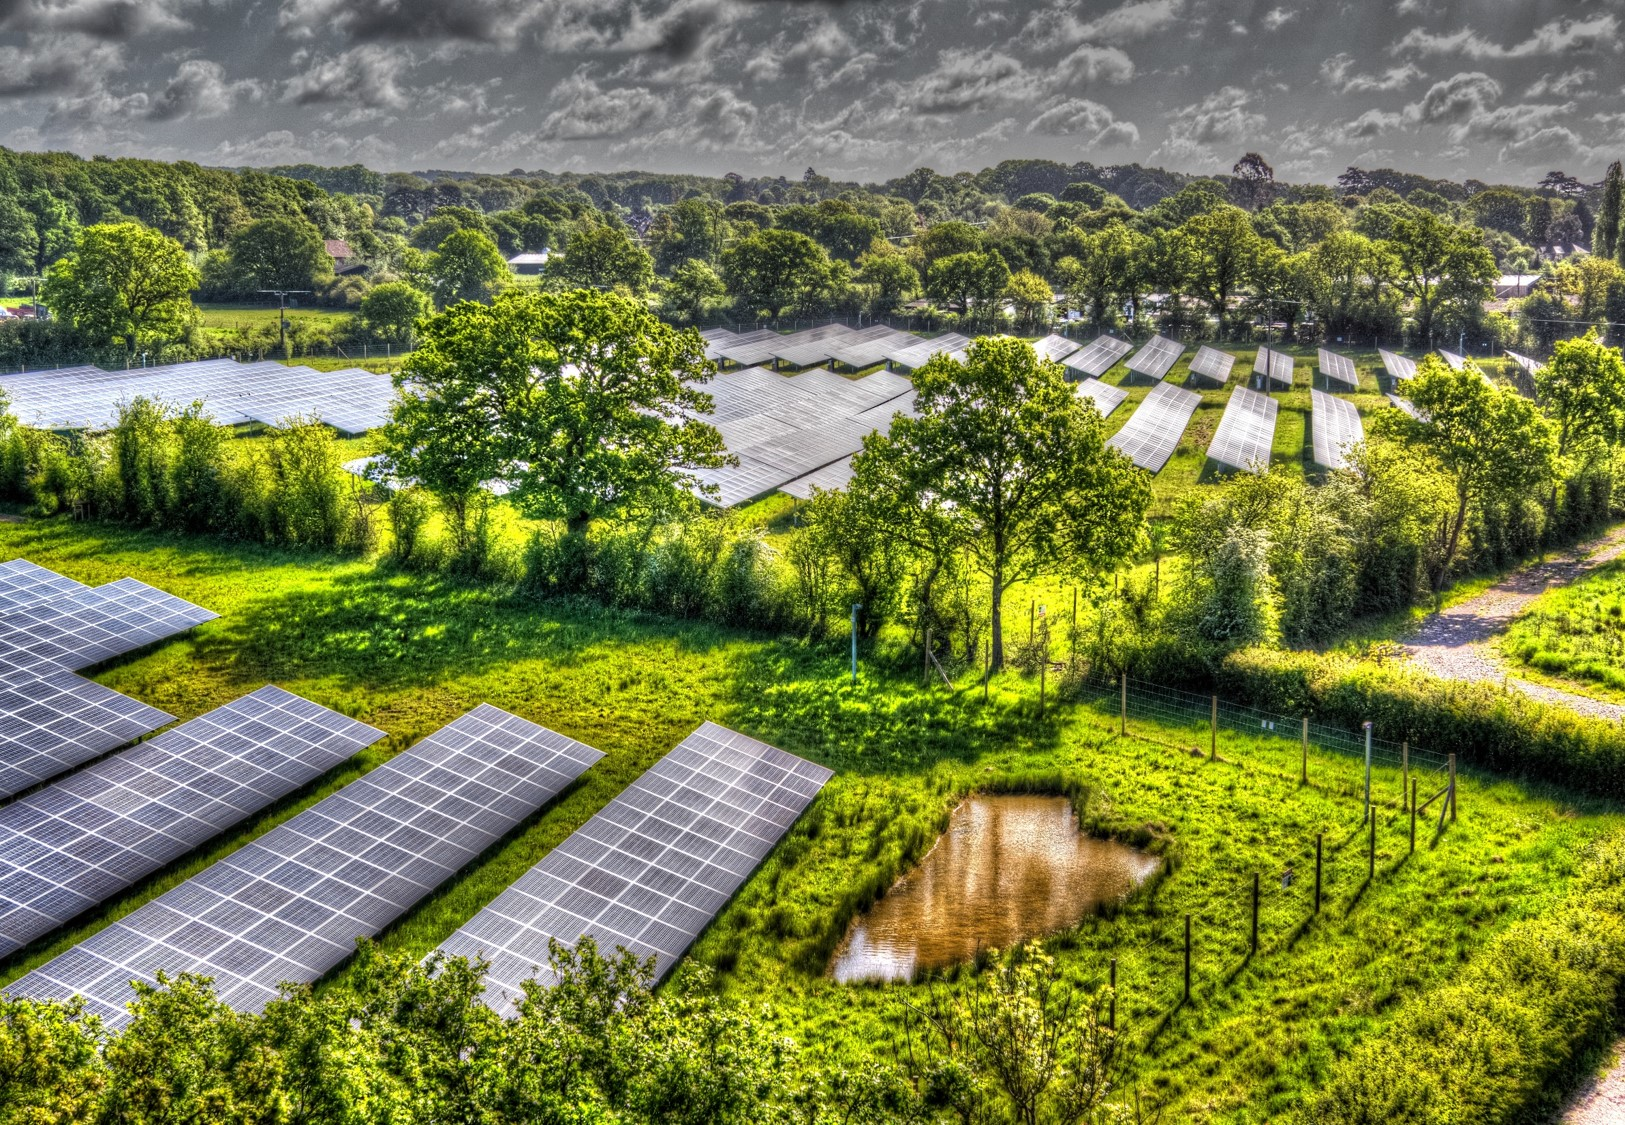 UK investor Next Energy Solar Fund energised one of the UK's first subsidy-free solar farms last year (pictured) and has plans to complete more this year. Image: NESF.